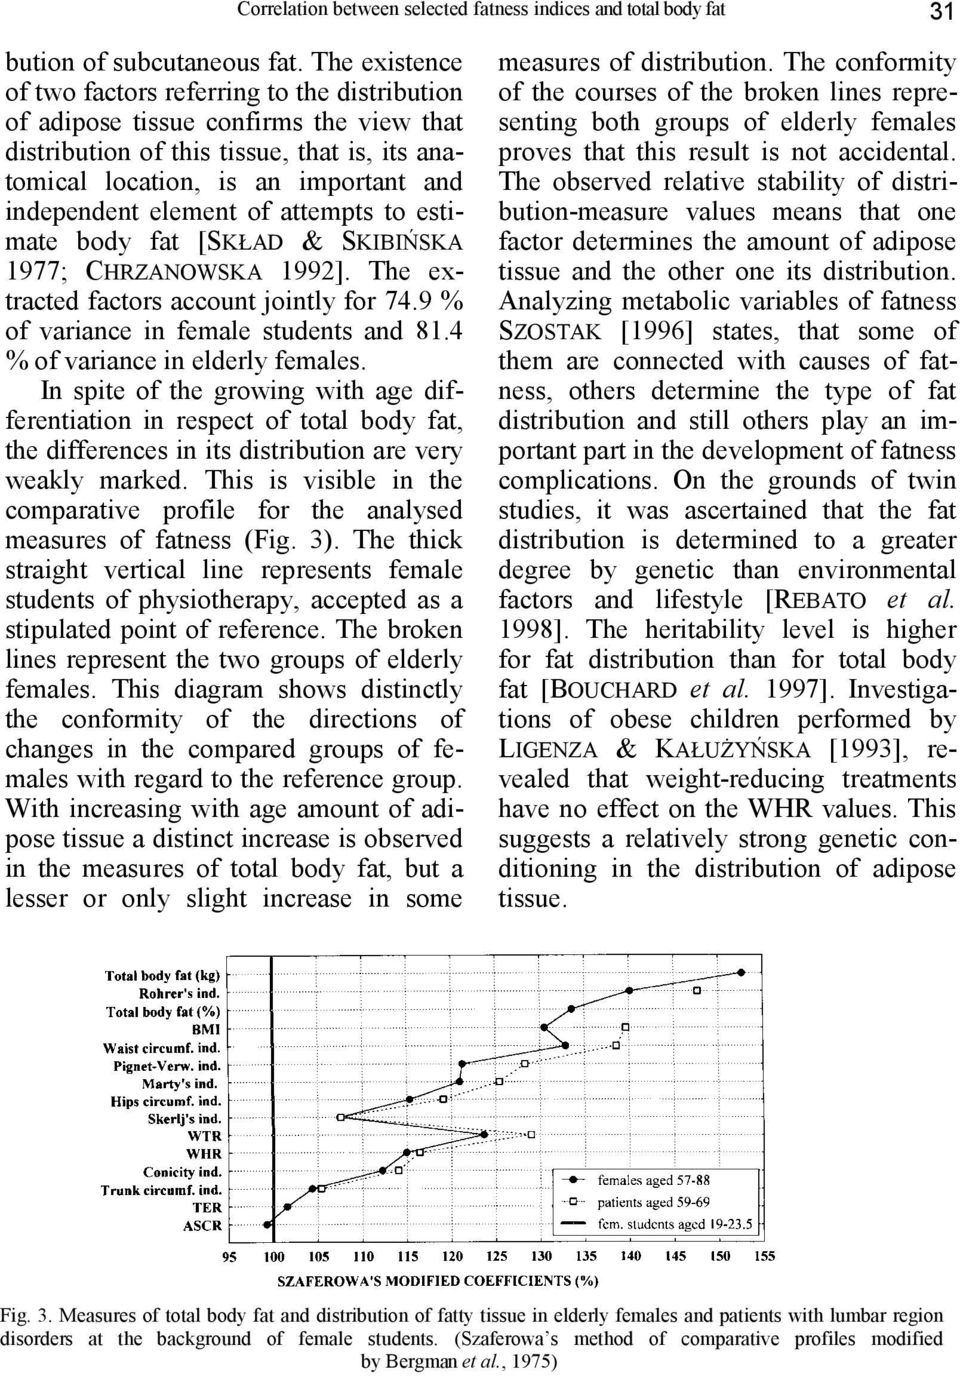 element of attempts to estimate body fat [SKŁAD & SKIBIŃSKA 1977; CHRZANOWSKA 1992]. The extracted factors account jointly for 74.9 % of variance in female students and 81.